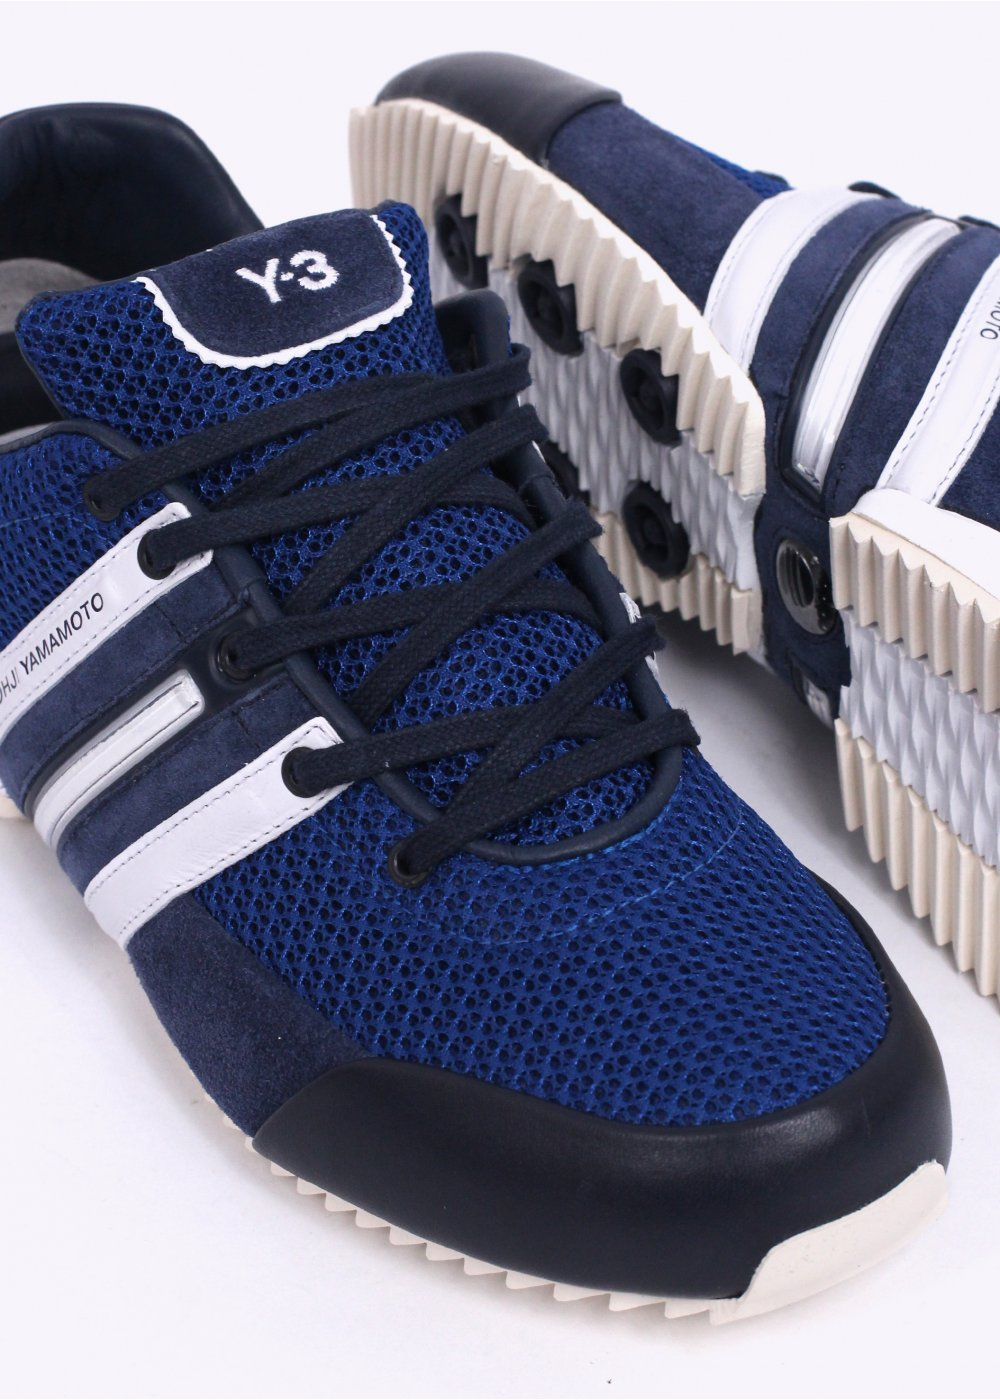 qcqmk y3 sprint trainers sale ,superstar 2 trainers ,adidas superstar